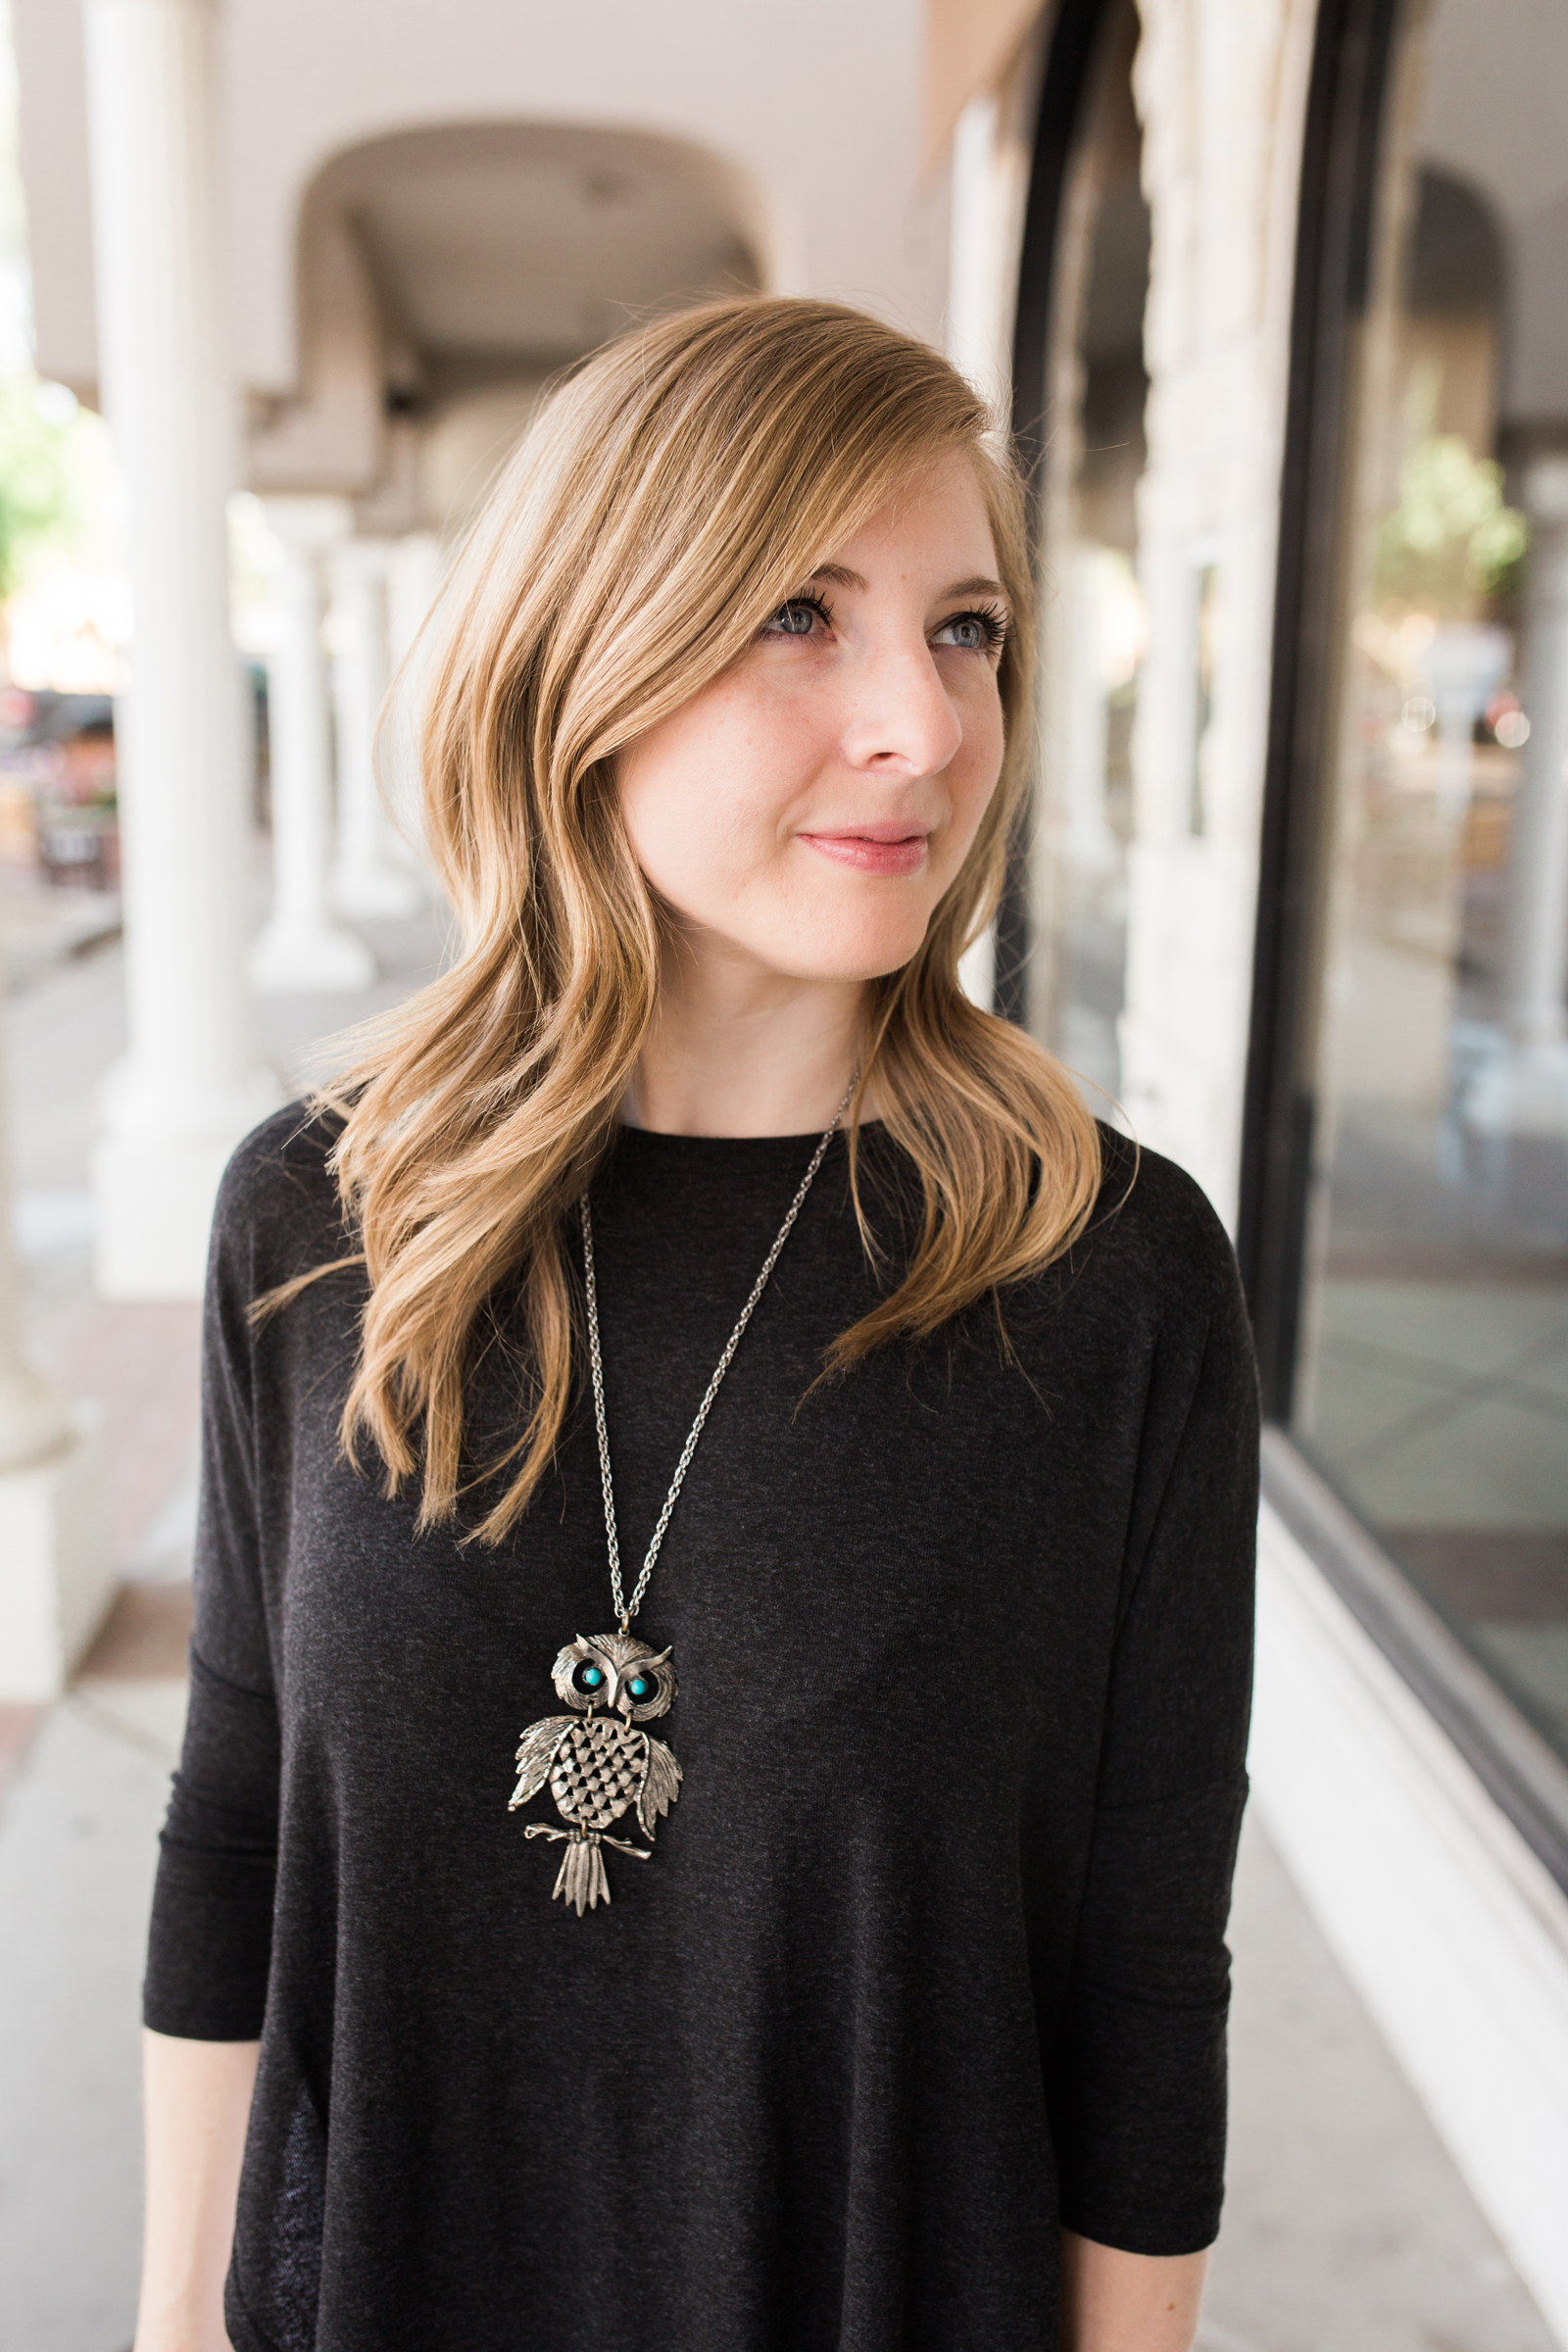 Vintage Owl Necklace against a Black Tunic